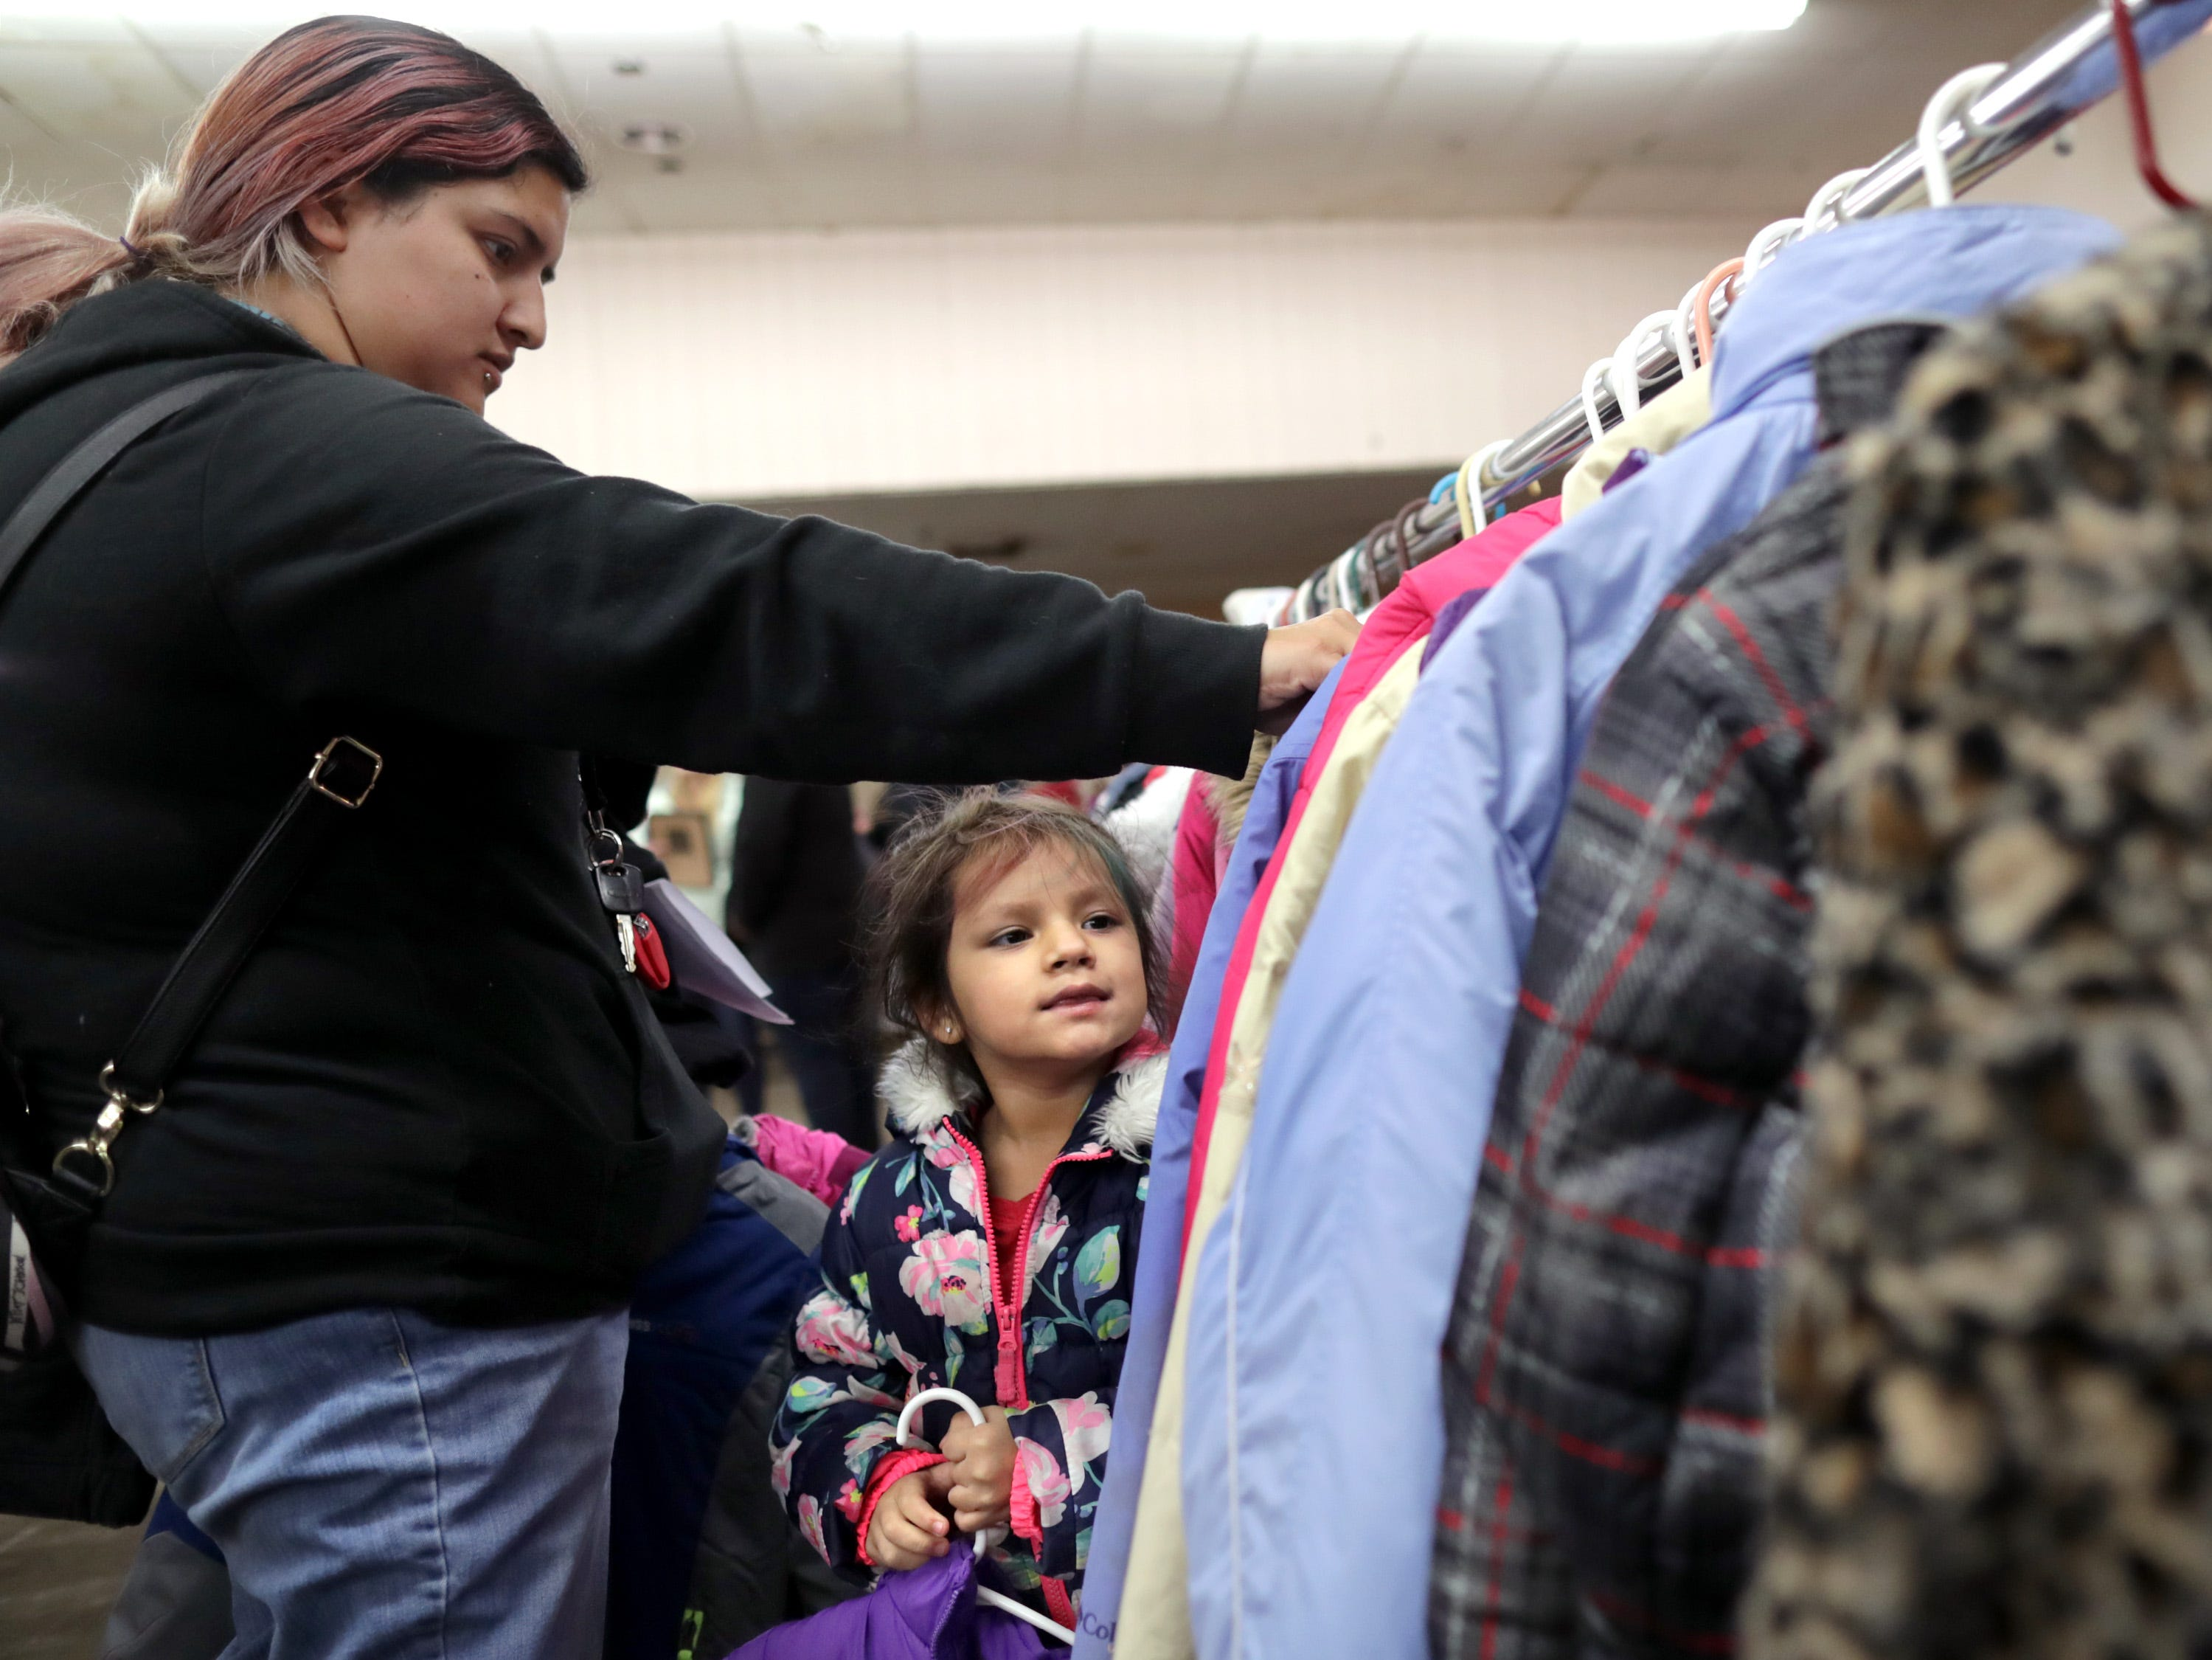 Amy Reyes and 3 year old Magnolia Perez look through a rack of winter coats during the annual Salvation Army Coats for Kids on Wednesday, November 7, 2018, in Kimberly, Wis. the distribution center ast Fox Valley Chrisian Fellowship Church in Kimberly will be open on Thursday November, 8 Friday November, 9 from 8 am until noon.